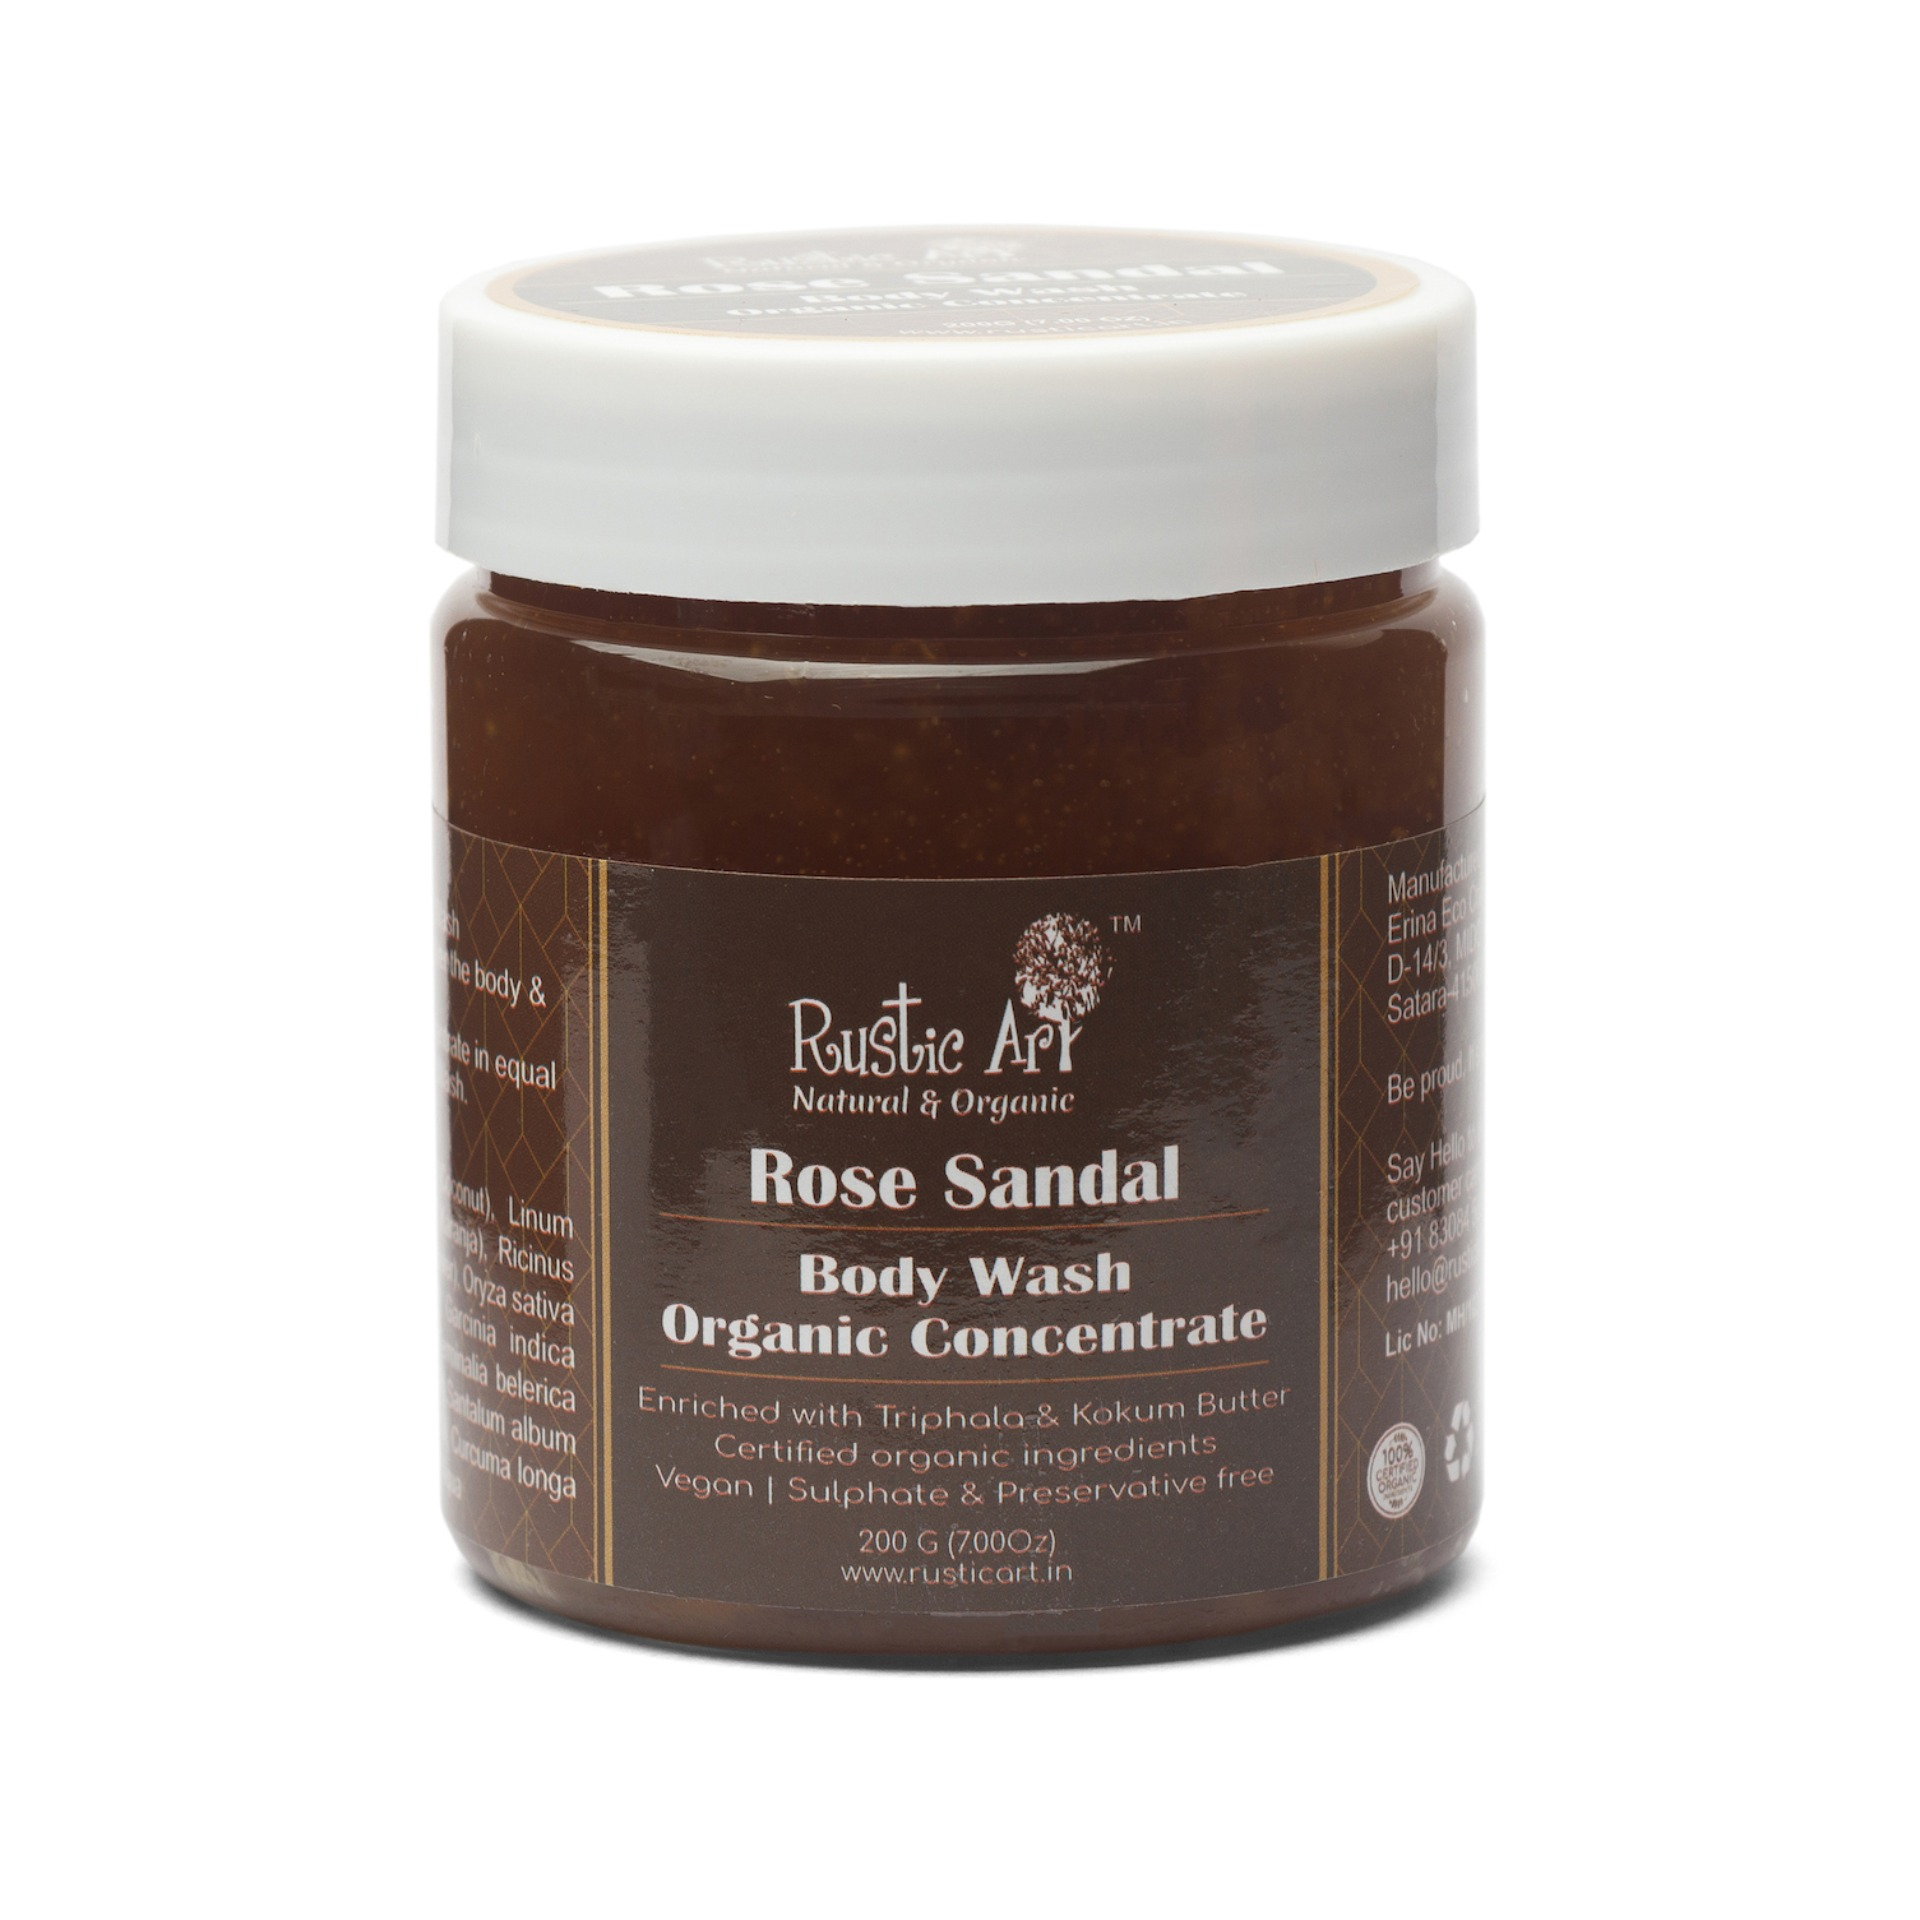 Rustic Art Rose Sandal Body Wash Concentrate - 100gm